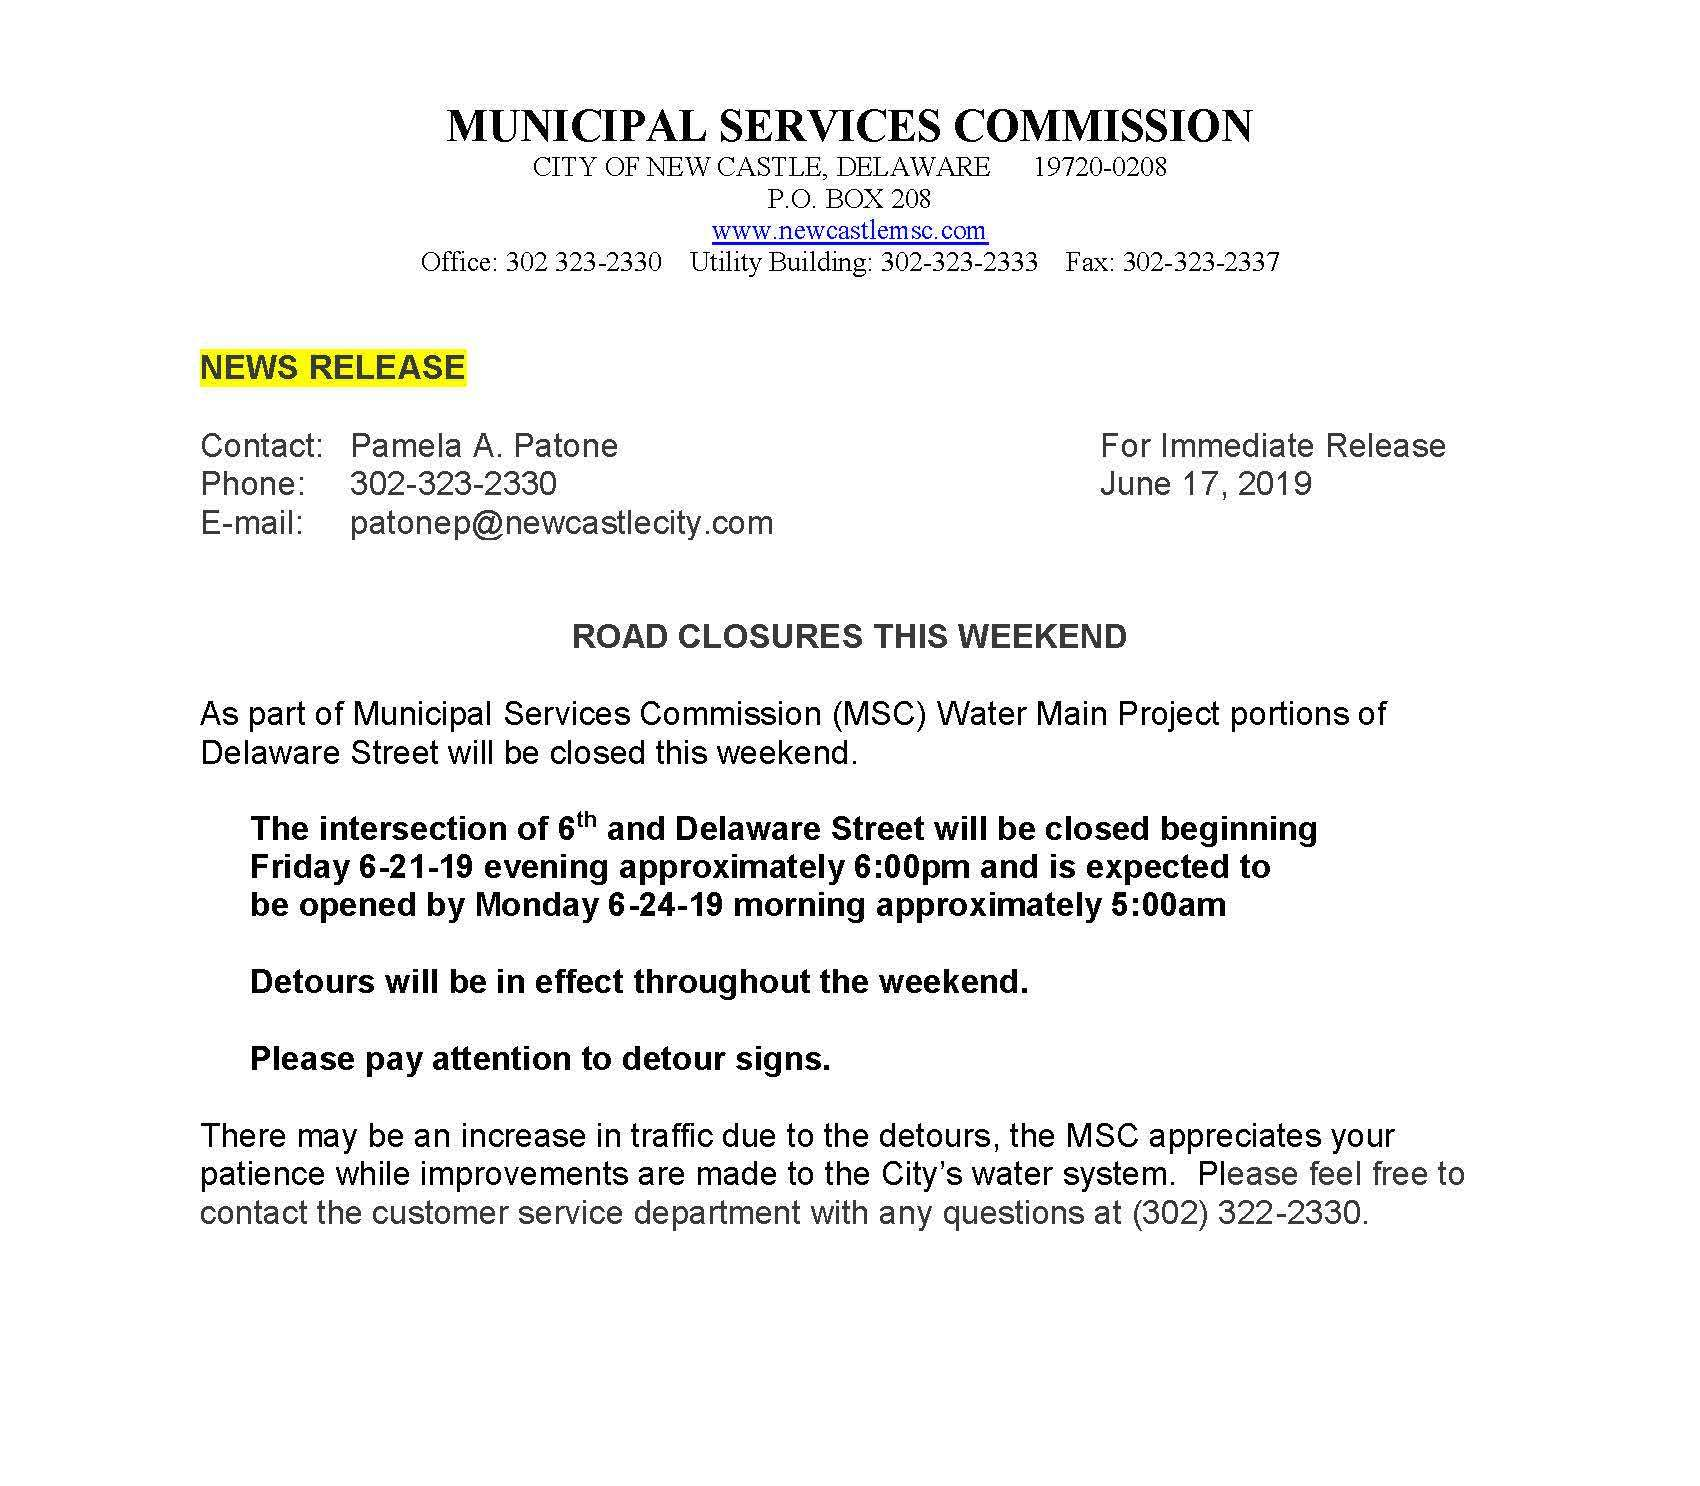 MSC NEWS RELEASE - ROAD CLOSURES THIS WEEKEND - City of New Castle